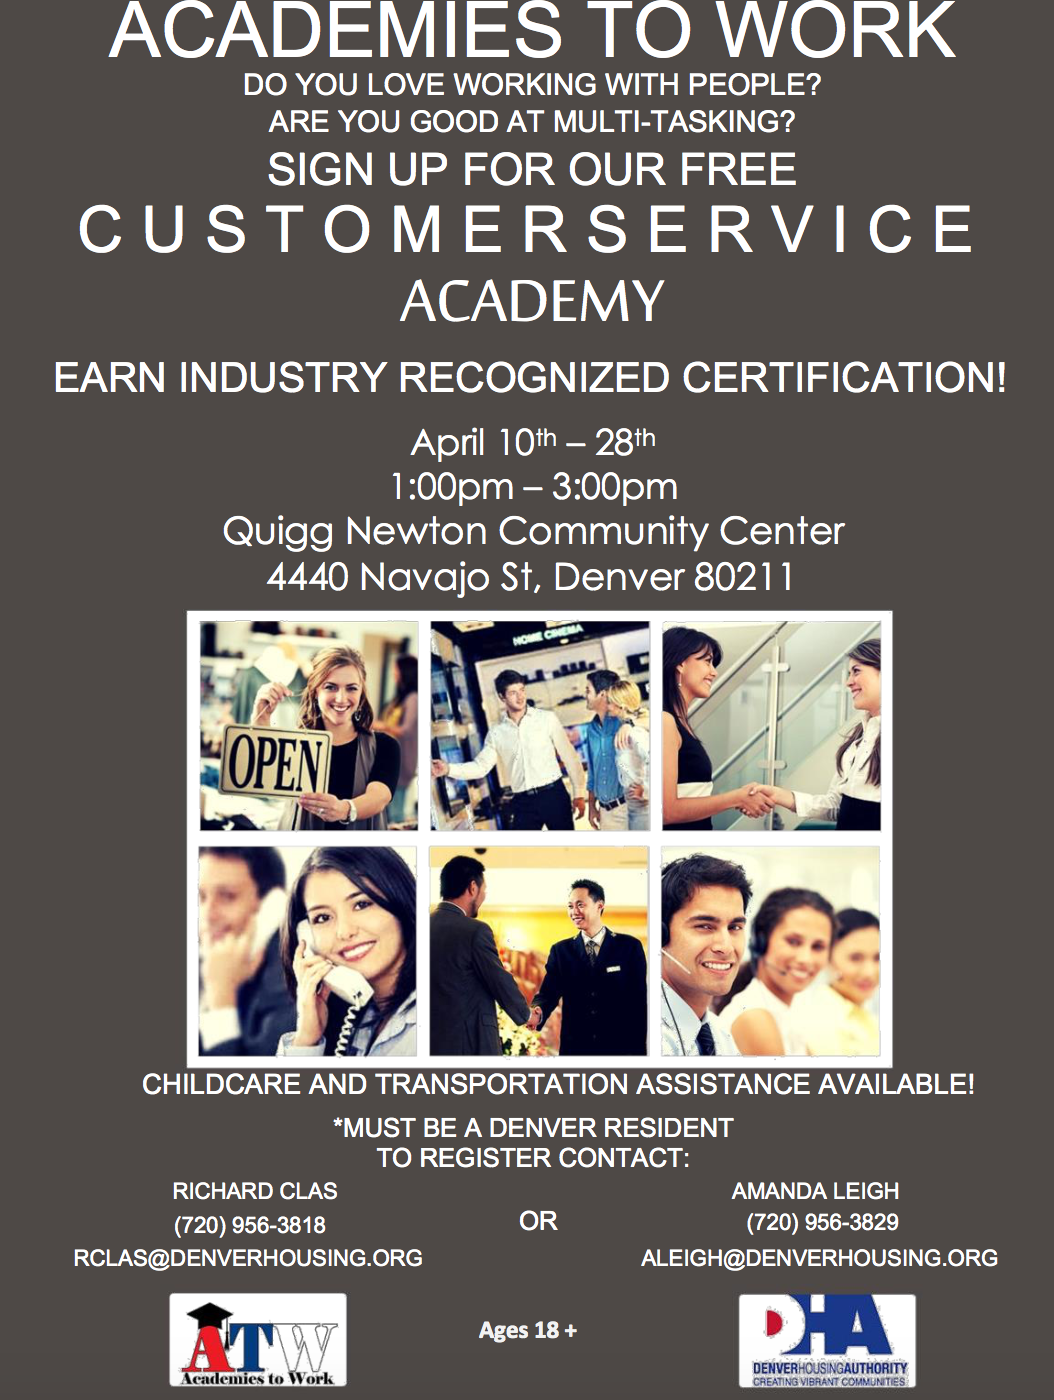 ACADEMIES TO WORK DO YOU LOVE WORKING WITH PEOPLE? ARE YOU GOOD AT MULTI-TASKING? SIGN UP FOR OUR FREE C U S T O M E R S E R V I C E ACADEMY EARN INDUSTRY RECOGNIZED CERTIFICATION! April 10th – 28th 1:00pm – 3:00pm Quigg Newton Community Center 4440 Navajo St, Denver 80211 CHILDCARE AND TRANSPORTATION ASSISTANCE AVAILABLE! *MUST BE A DENVER RESIDENT TO REGISTER CONTACT: RICHARD CLAS (720) 956-3818 AMANDA LEIGH OR (720) 956-3829 RCLAS@DENVERHOUSING.ORG ALEIGH@DENVERHOUSING.ORG Ages 18 +